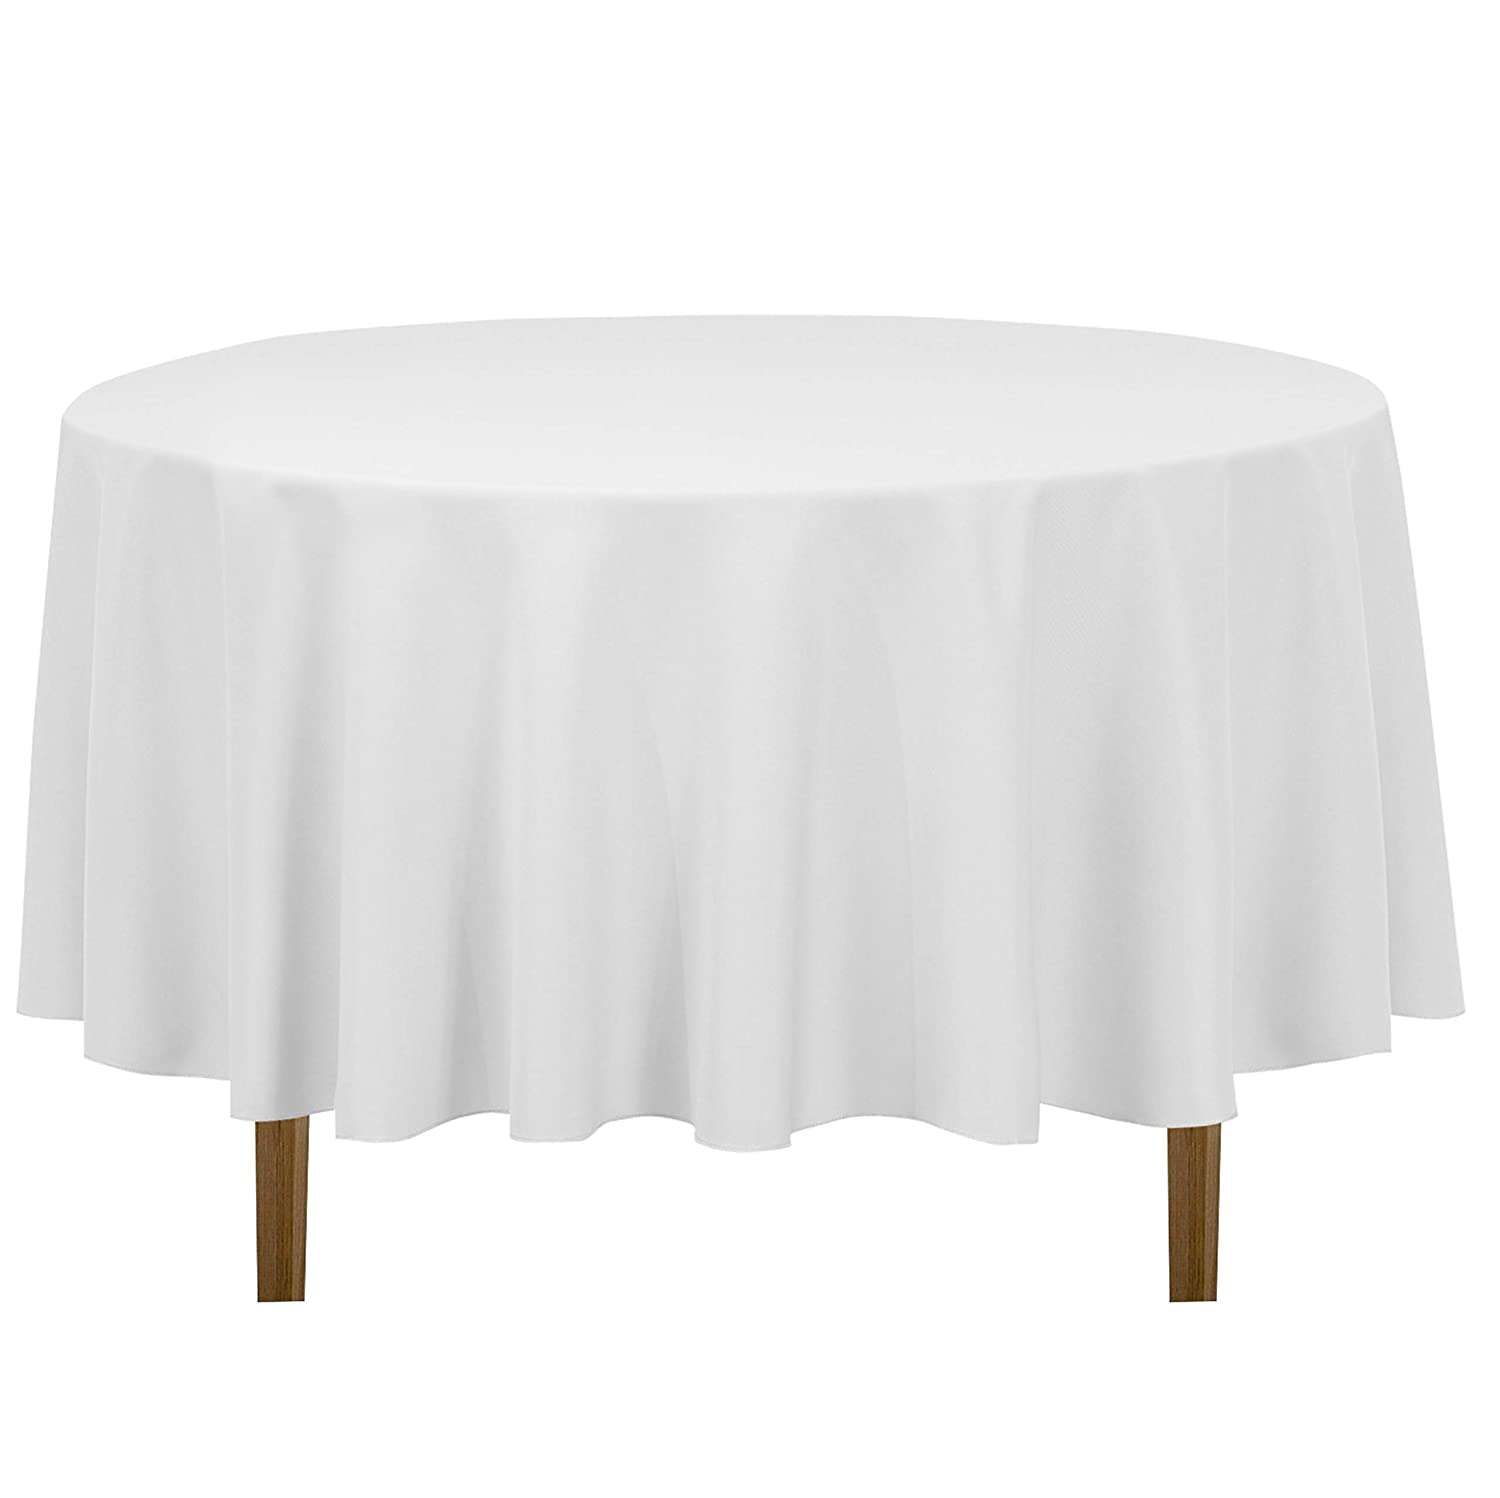 LinenTablecloth 90-Inch Round Polyester Tablecloth,White